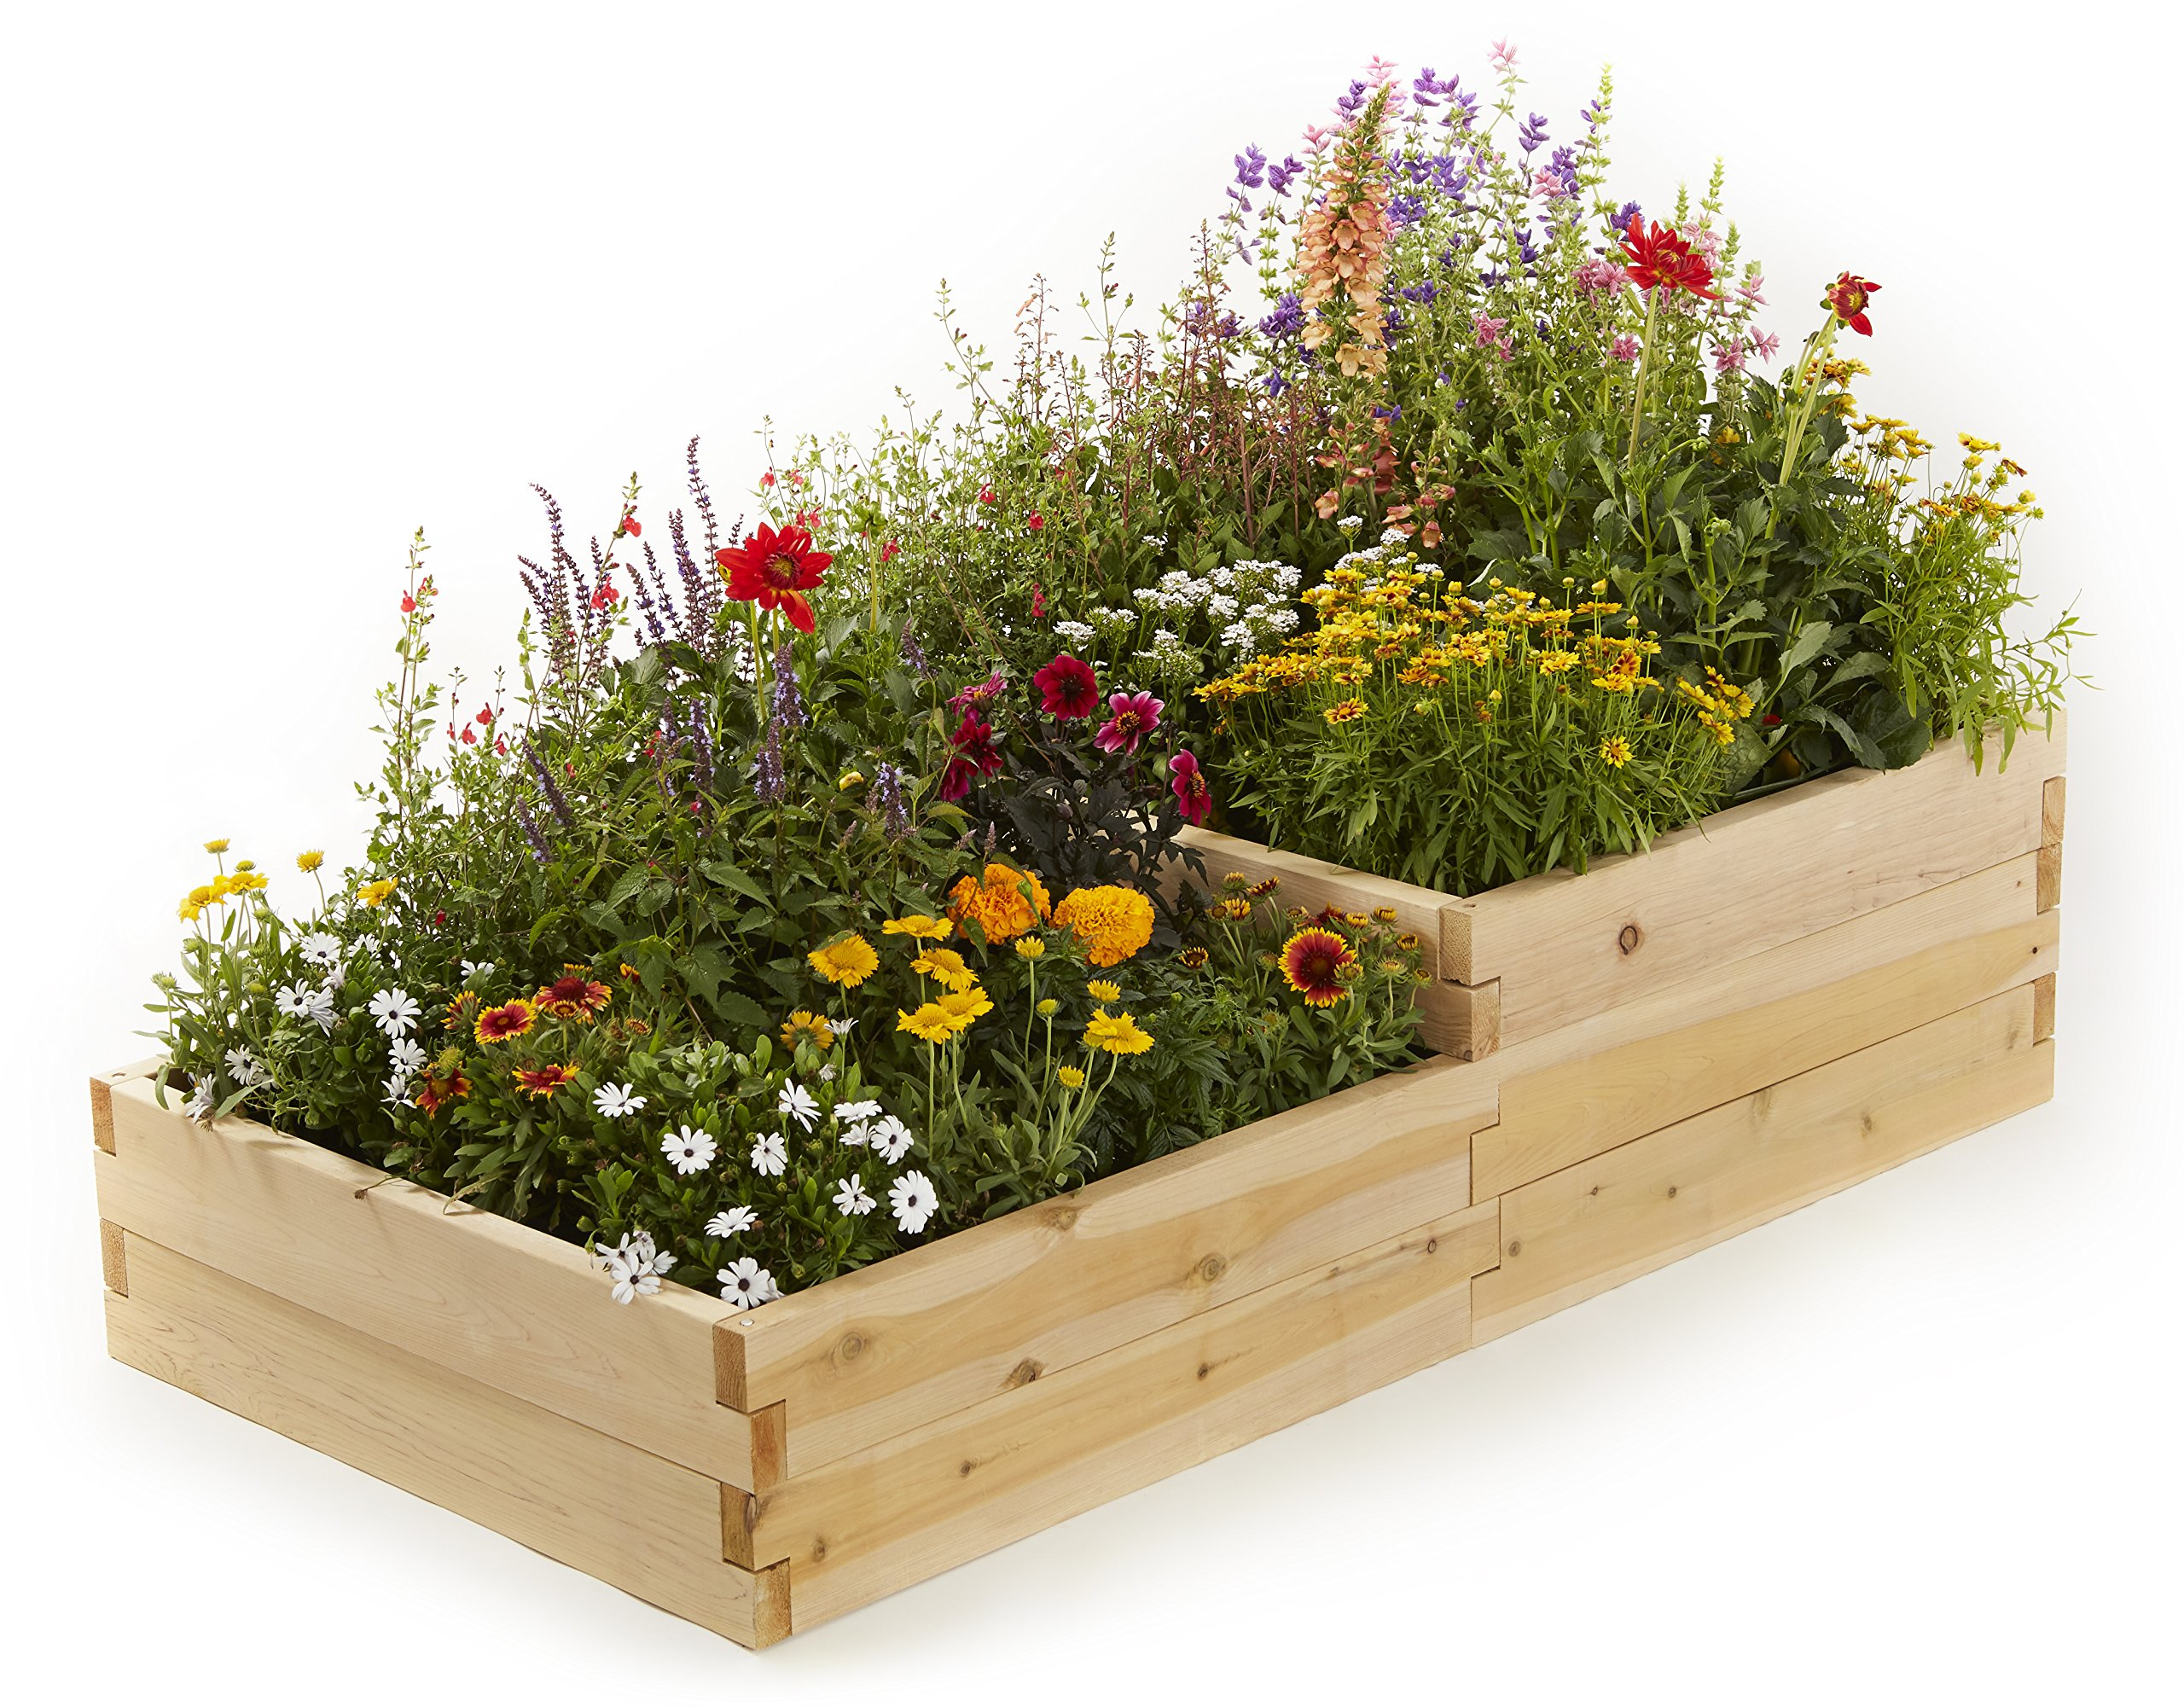 Naturalyards Raised Garden Bed, Multi-Level (Rustic Cedar, 2'x4'x16.5'')